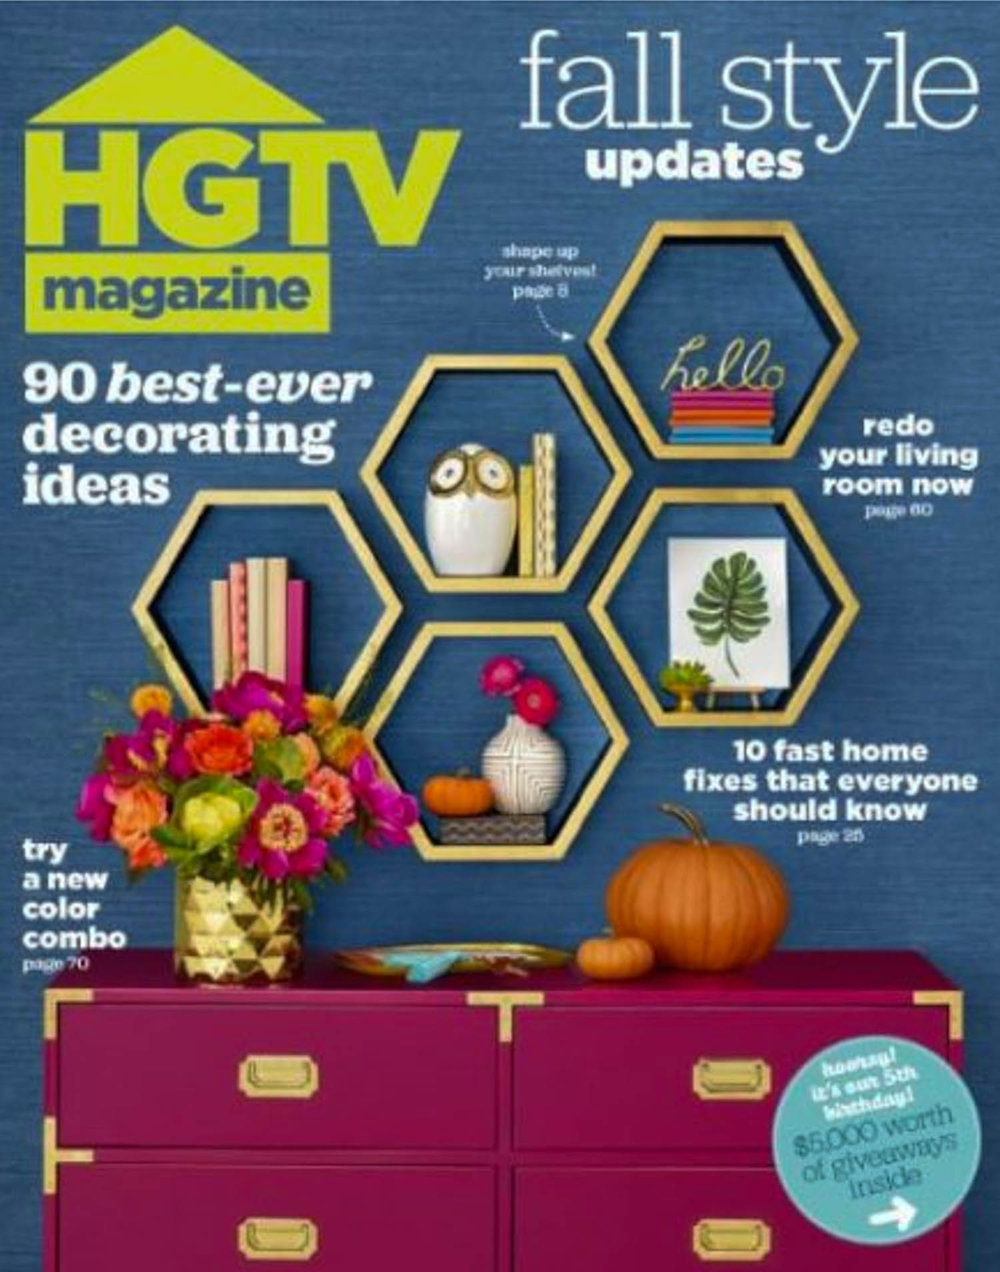 HGTV MAGAZINE OCTOBER 2016 ISSUE, PAGE 153 BEAUTIFUL INGREDIENT NAPKINS